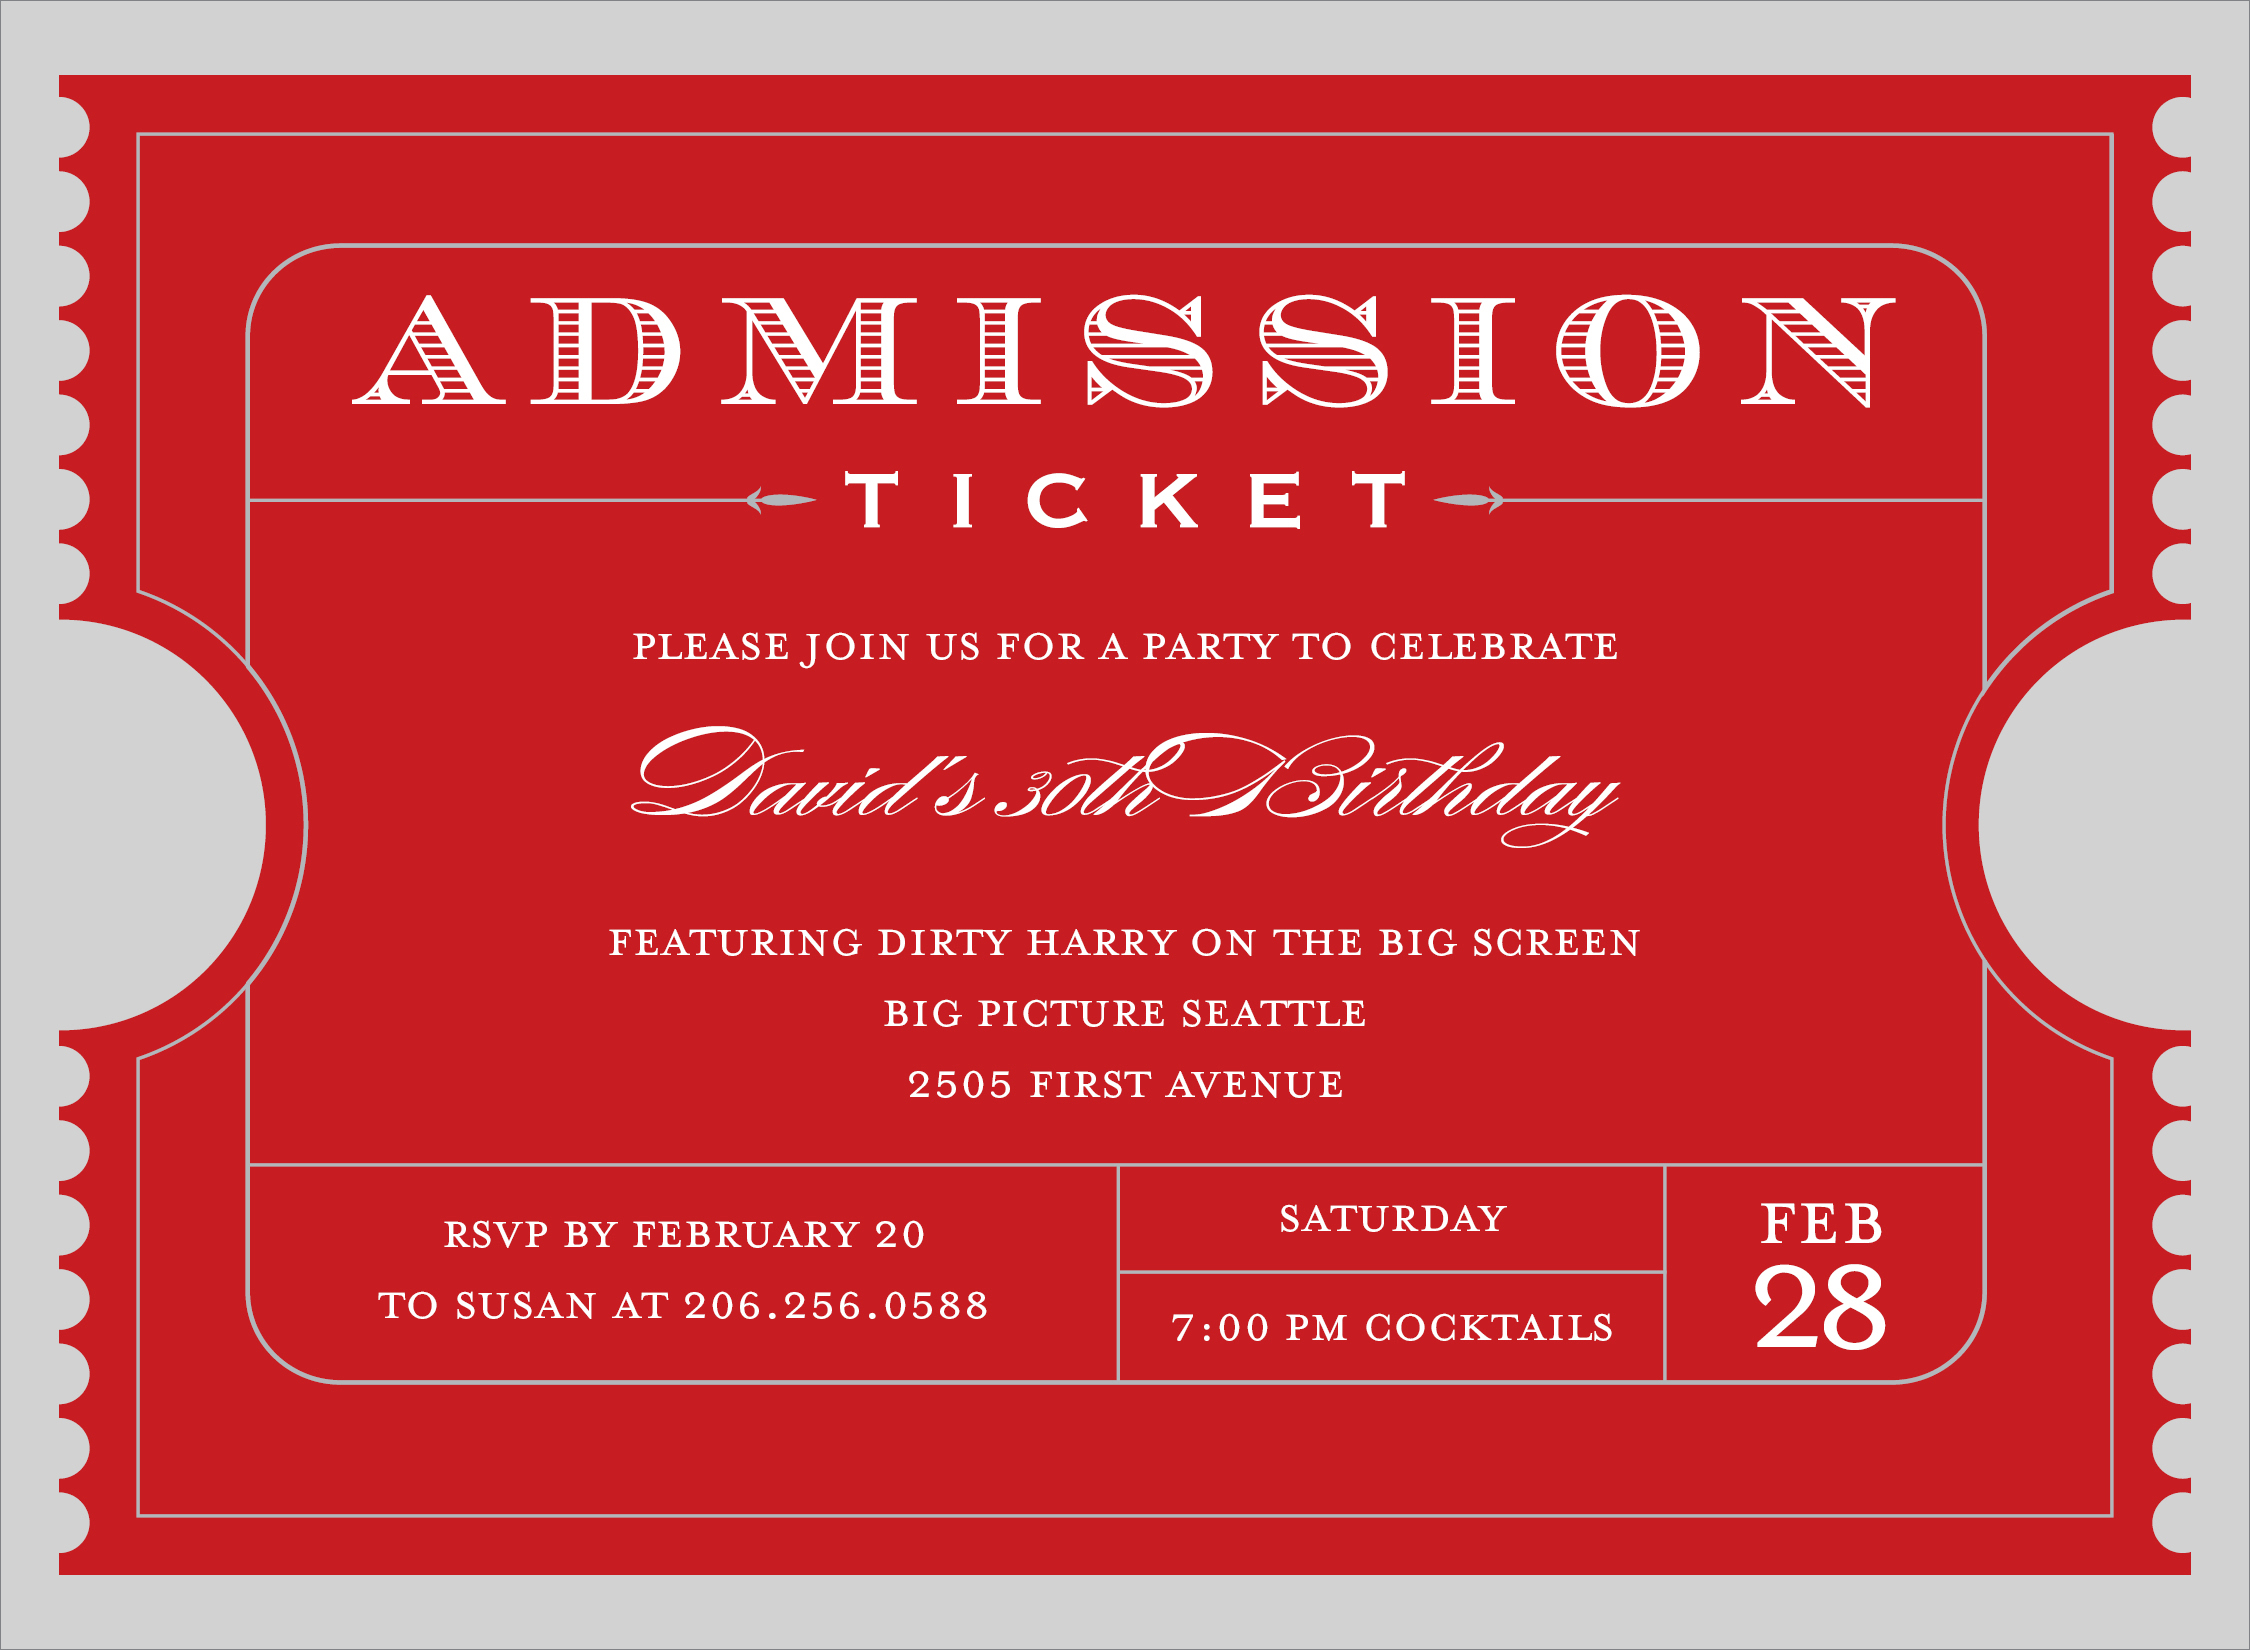 Dinner Tickets Template. free meal. sample event admission for ...